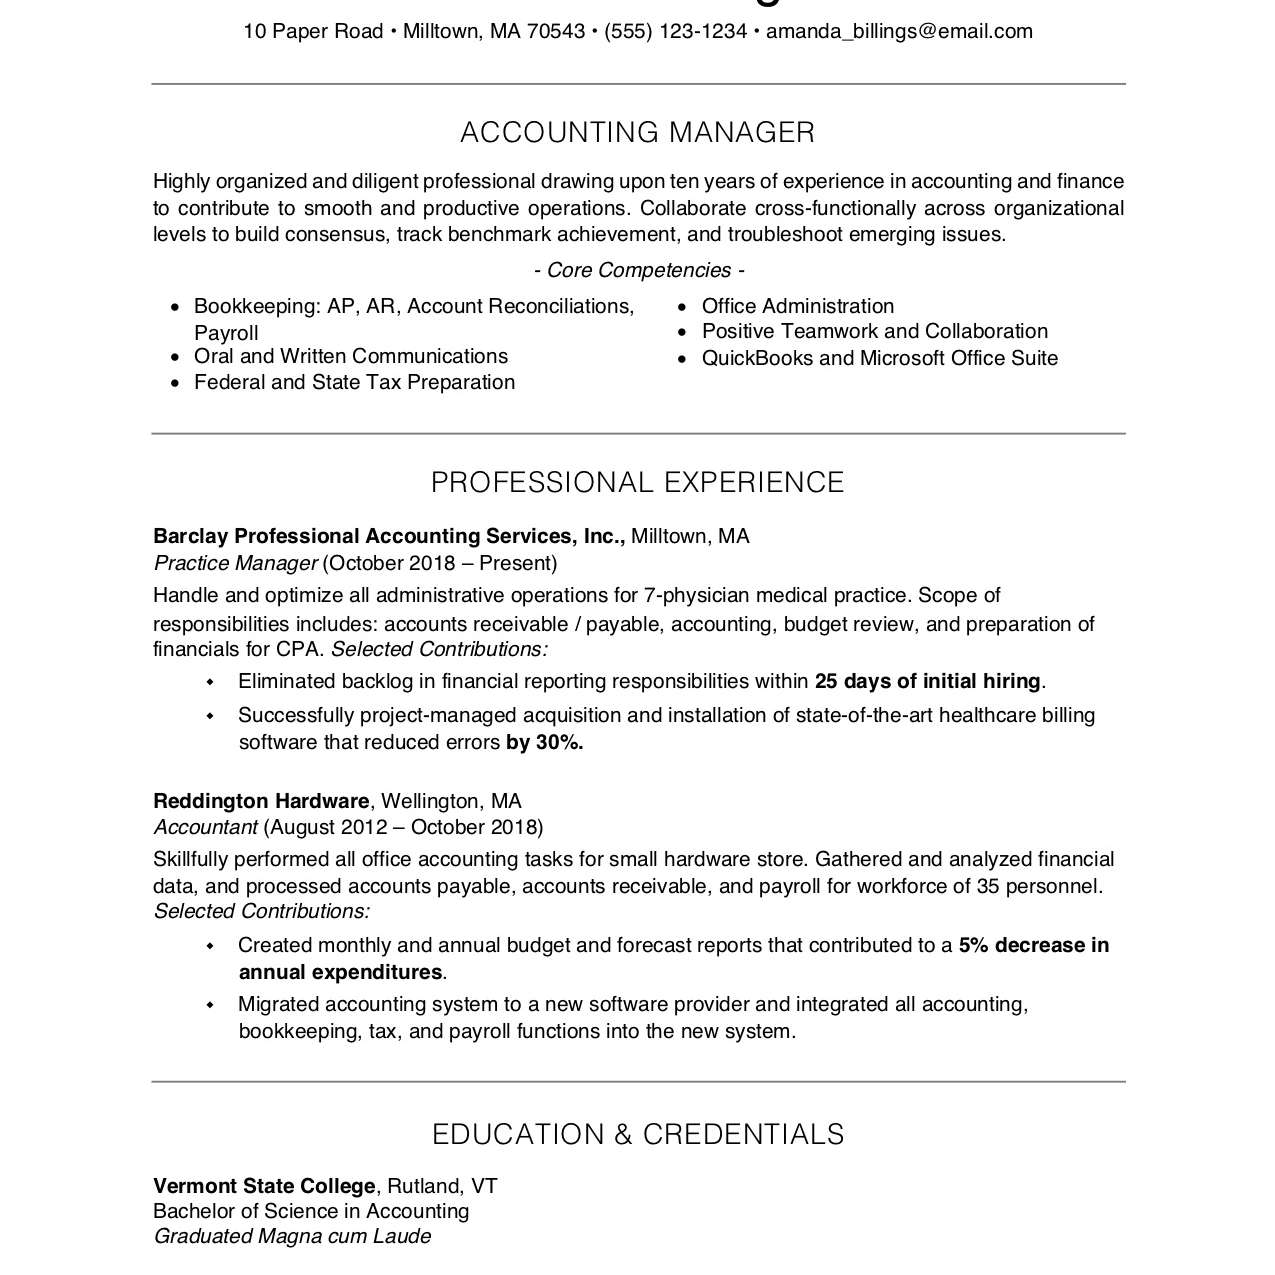 free professional resume examples and writing tips sample template 2063596res1 korean Resume Professional Sample Resume Template